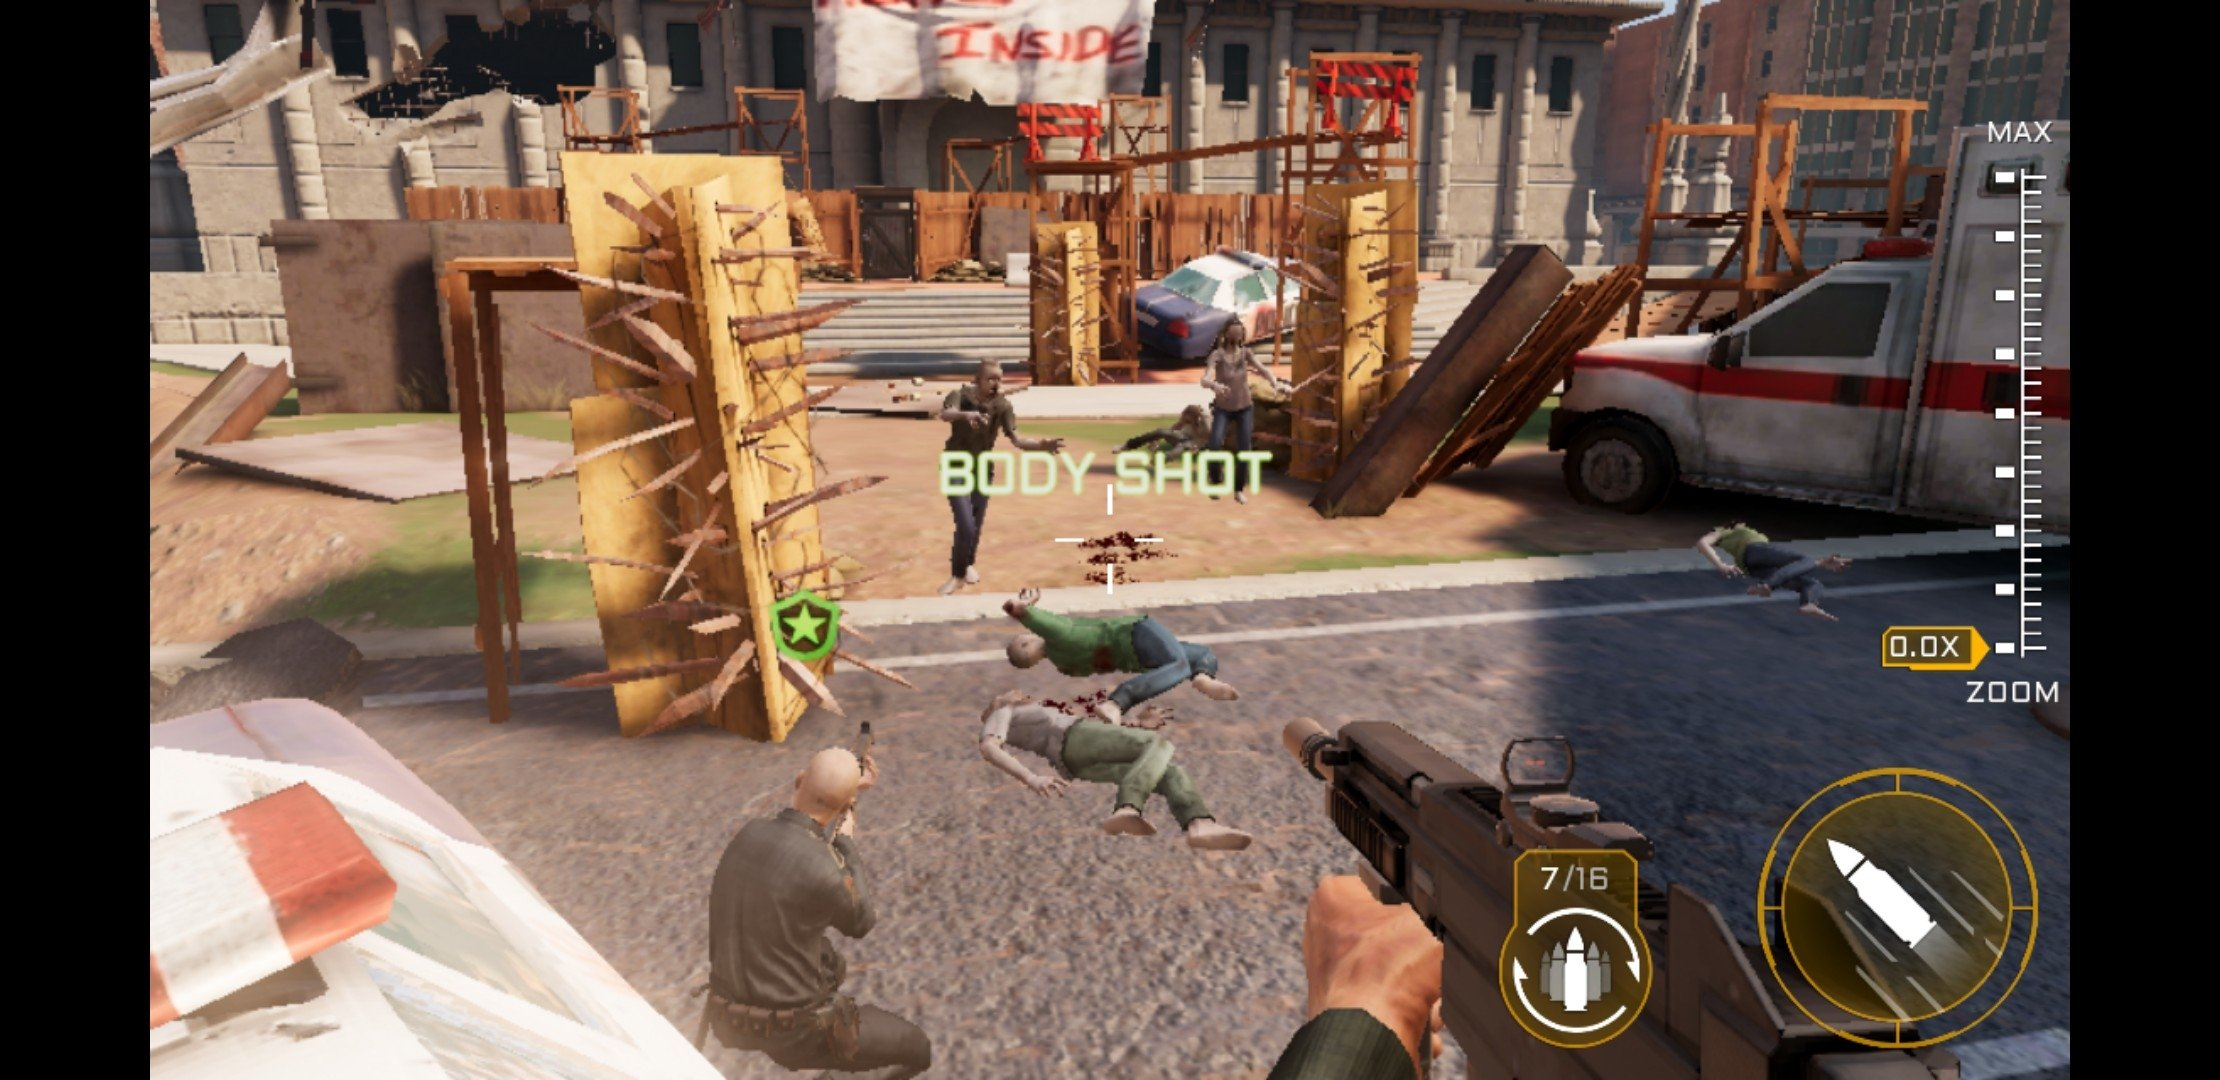 Kill Shot Virus 2 0 0 - Download for Android APK Free